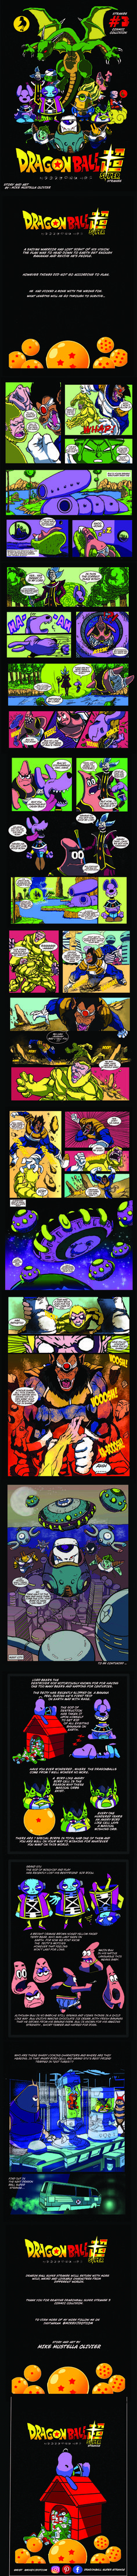 Super Strange 3 is a fan made parody comic based on the likes of Dragon Ball character's Minions, Pokémon ,family guy, Angry birds and more the story takes place in Dragon Ball universes but this time its all strange an unusual. OPEN LIKE TO VIEW WEBTOON Angry Birds, Webtoon, Dragon Ball, Minions, Family Guy, Comic, Fantasy, Anime, Comic Book